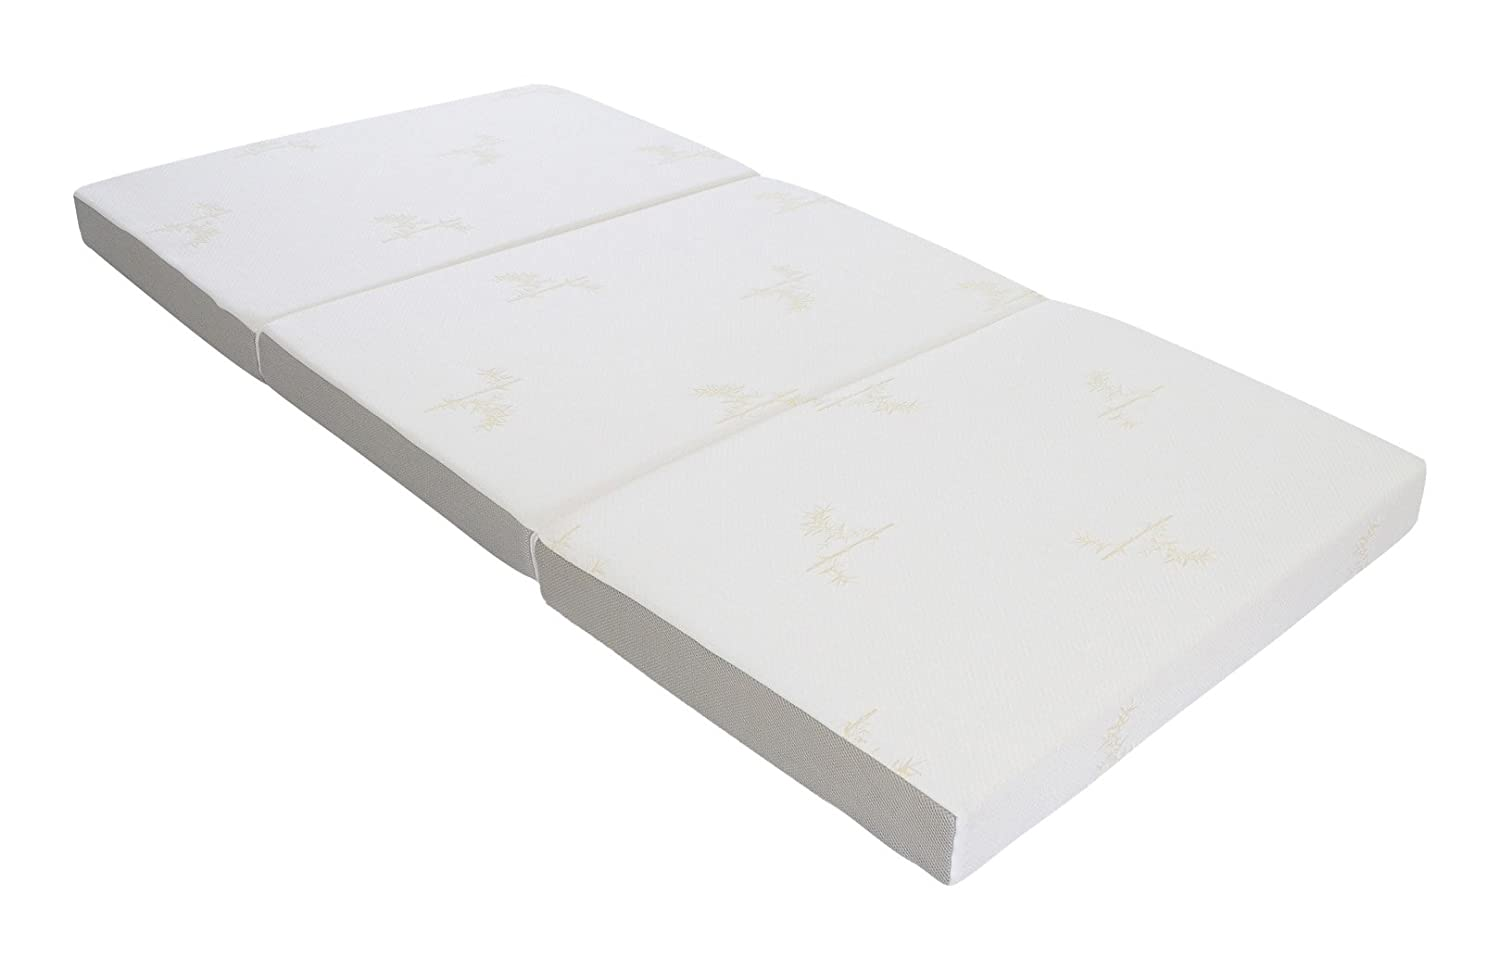 Best Folding Memory Foam Mattress A Concise 2017 Buying Guide